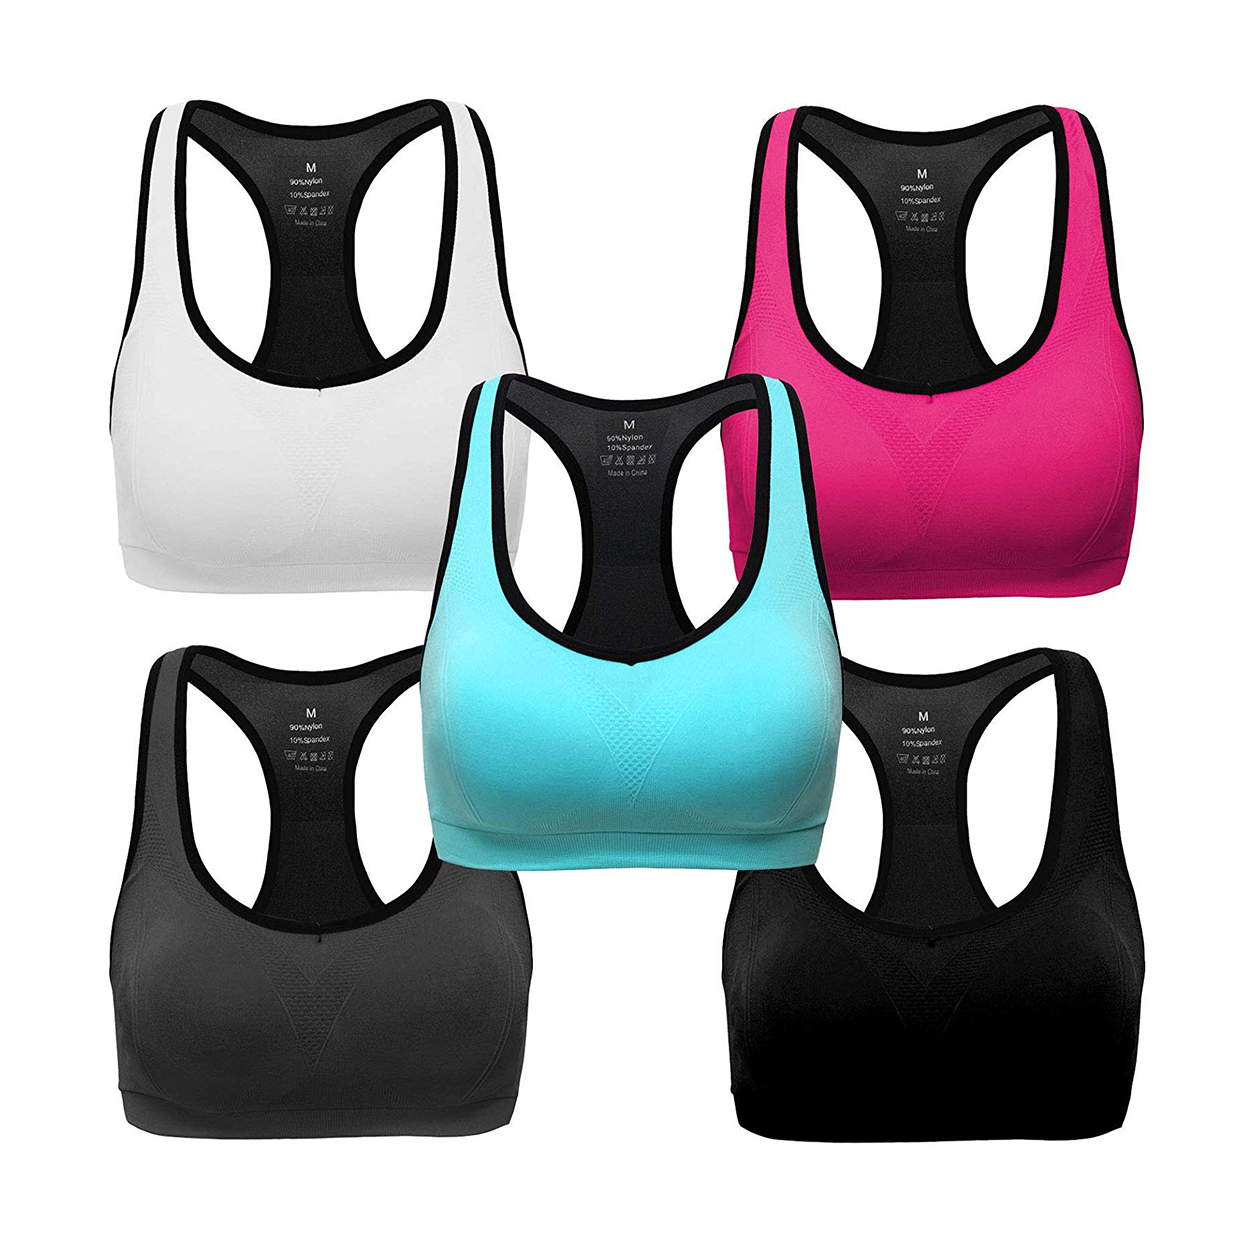 "Amazon Shoppers Love This Sports Bra So Much, They Crowned It a ""Most Wished for"" Product"